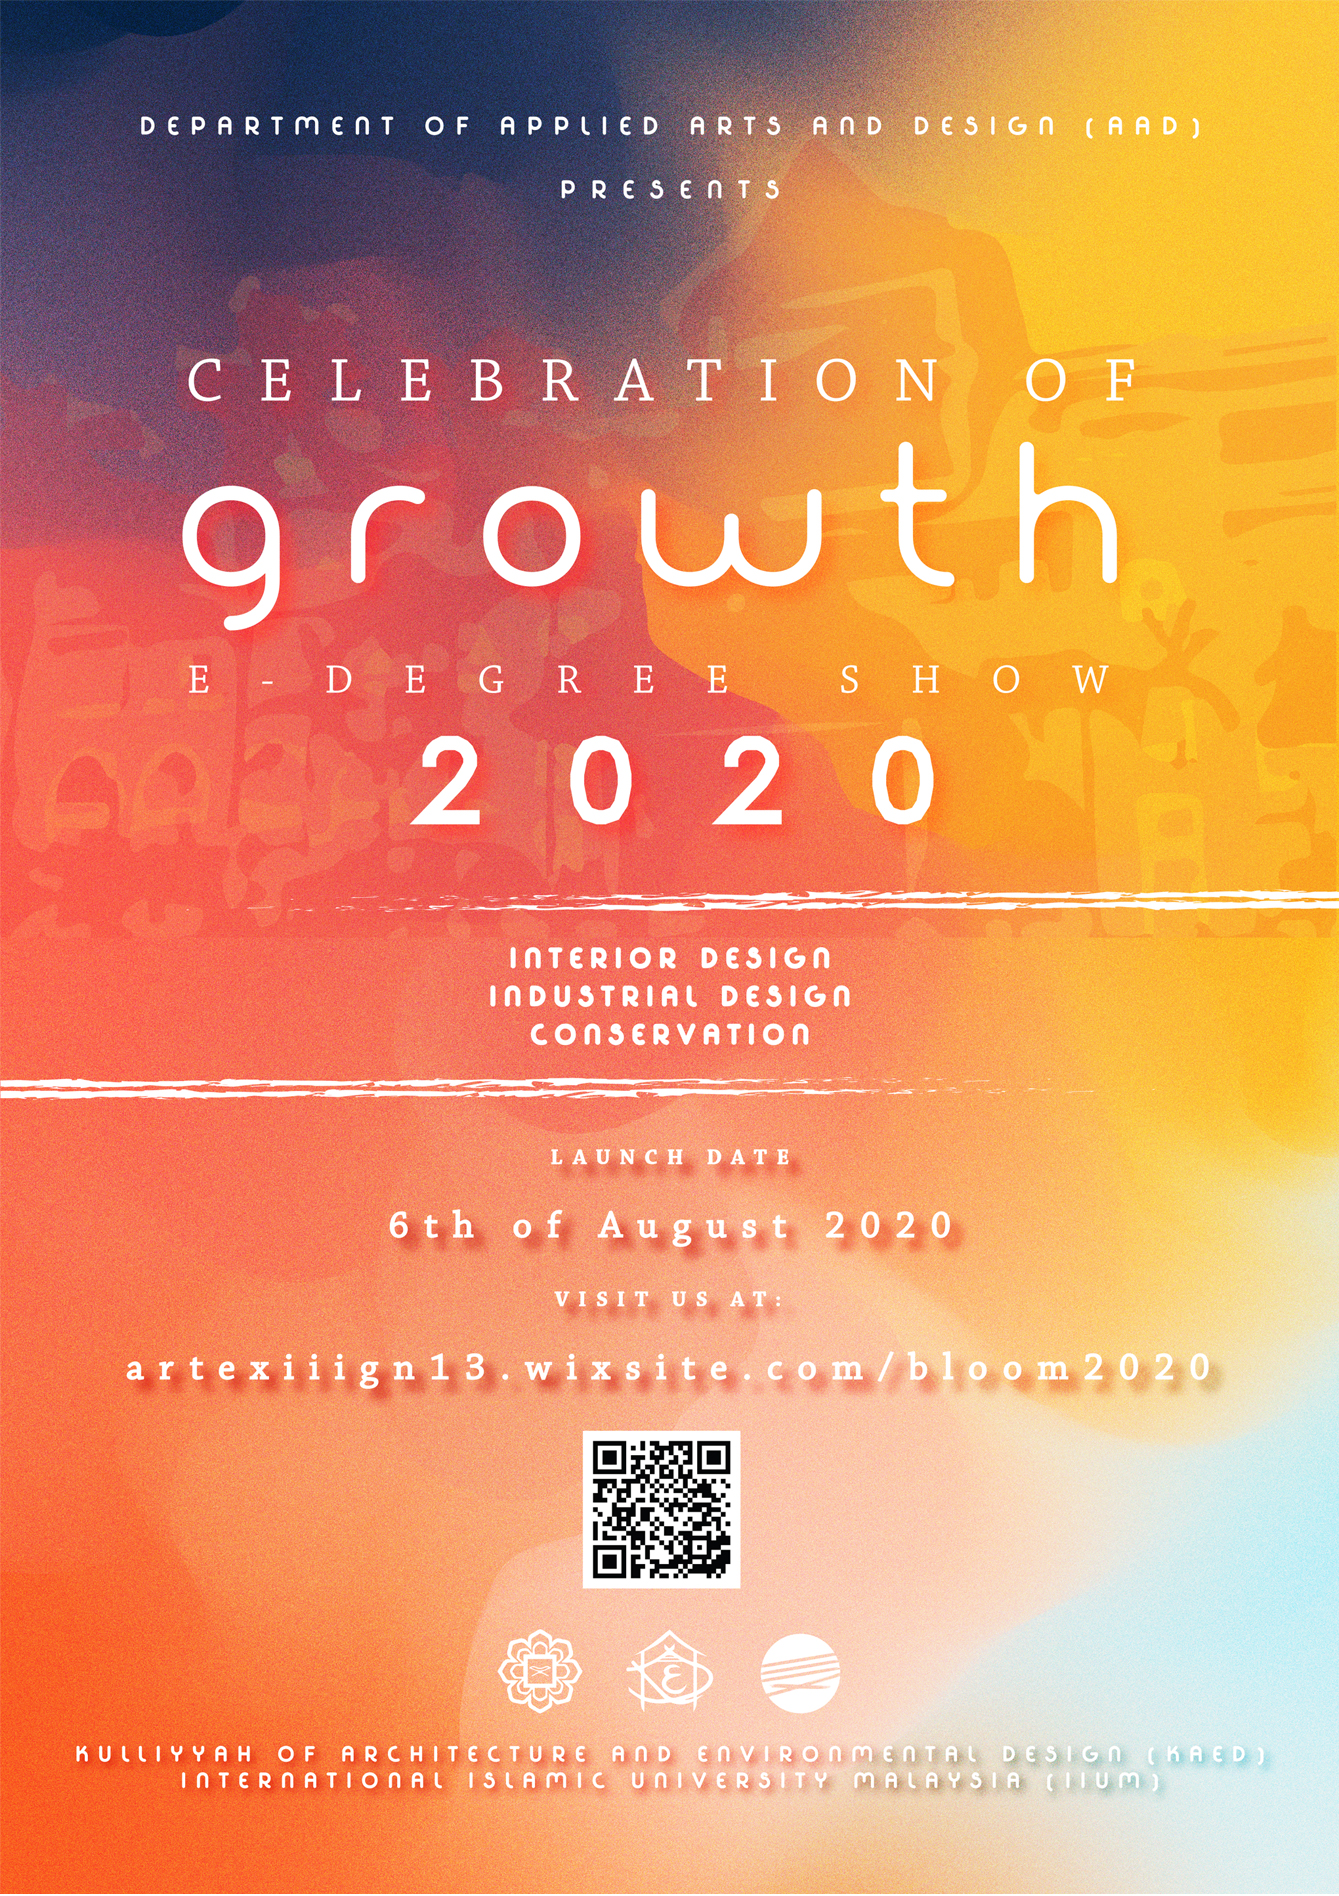 AAD E-Degree Show 2020  - Celebration of Growth